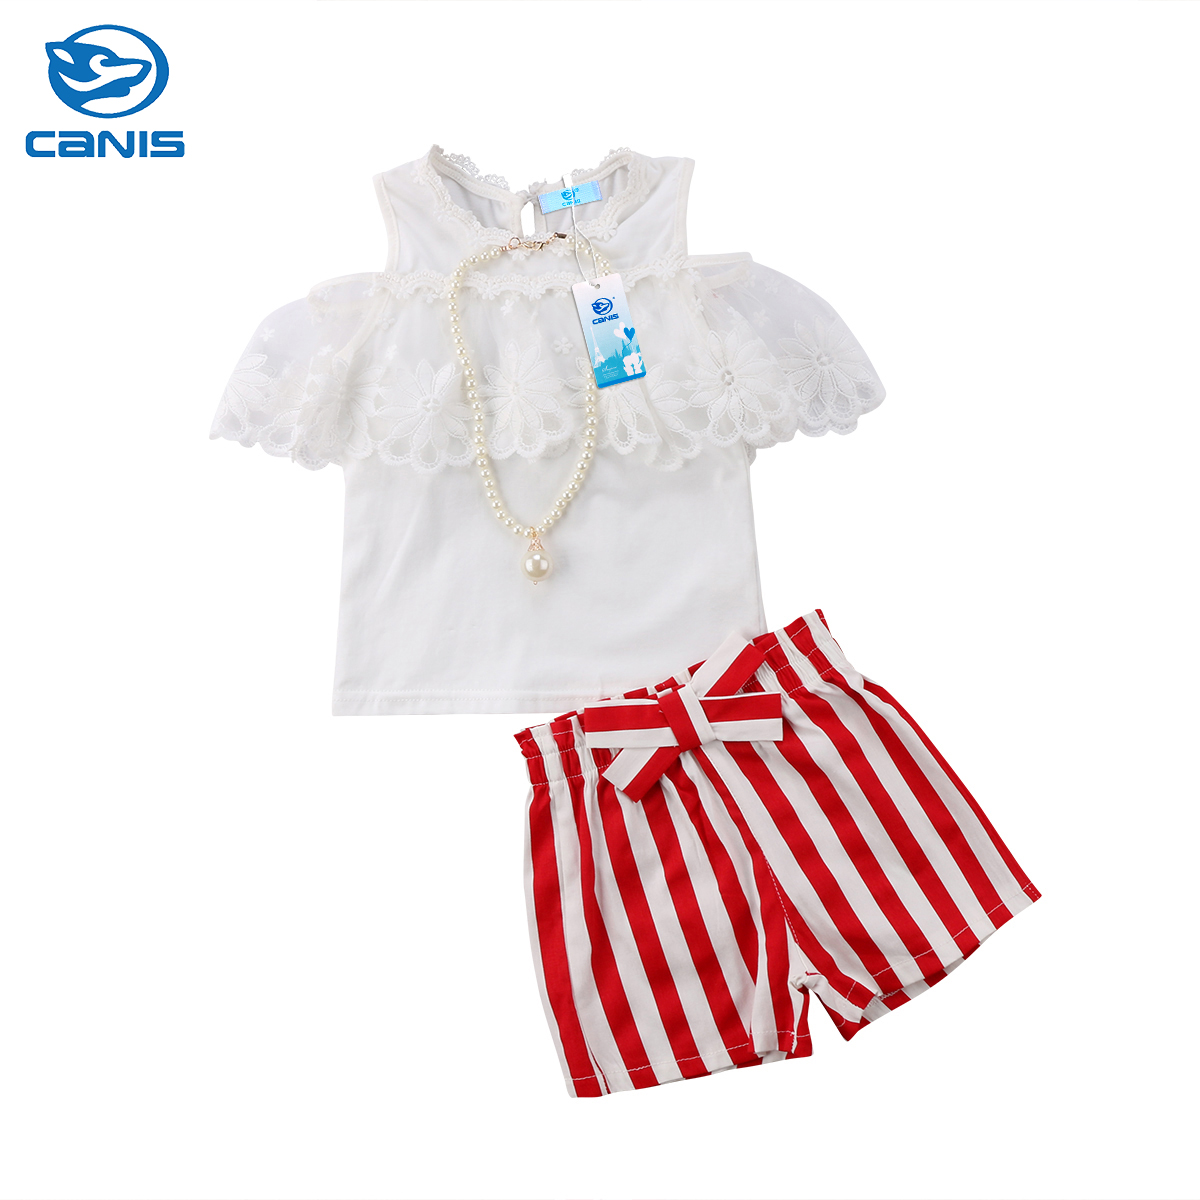 2018 Brand New Summer 2PCS Toddler Infant Kids Baby Girl Clothes Lace Off Shoulder Tops + Shorts Striped Pants Outfits Set 2-7T summer casual denim newborn toddler baby girl clothing kids off shoulder crop tops shorts outfit clothes set